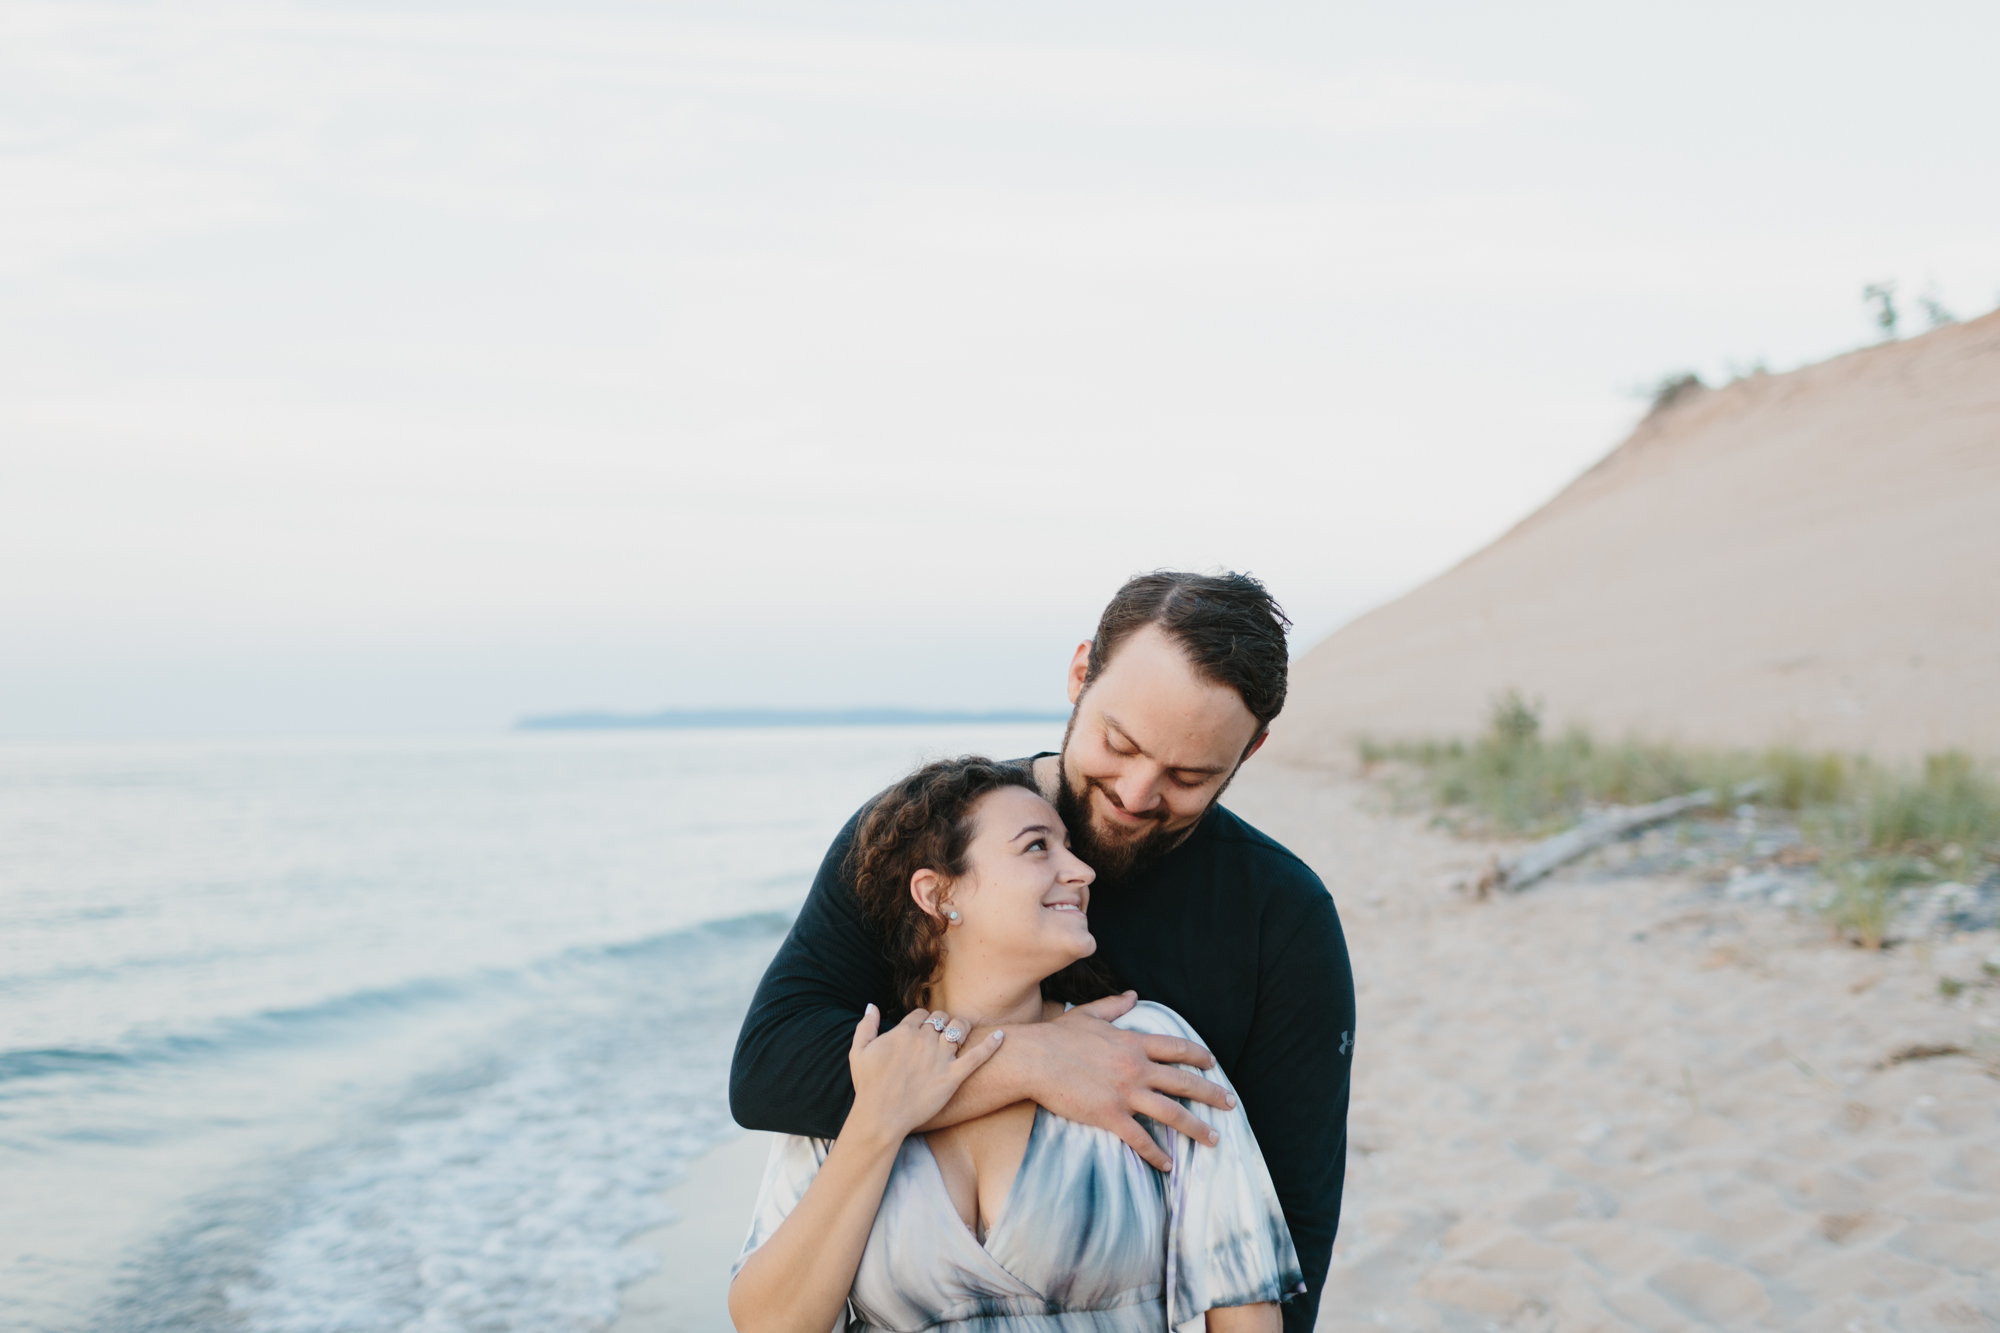 Northern Michigan Sleeping Bear Dunes Wedding Engagement Photographer Mae Stier-035.jpg